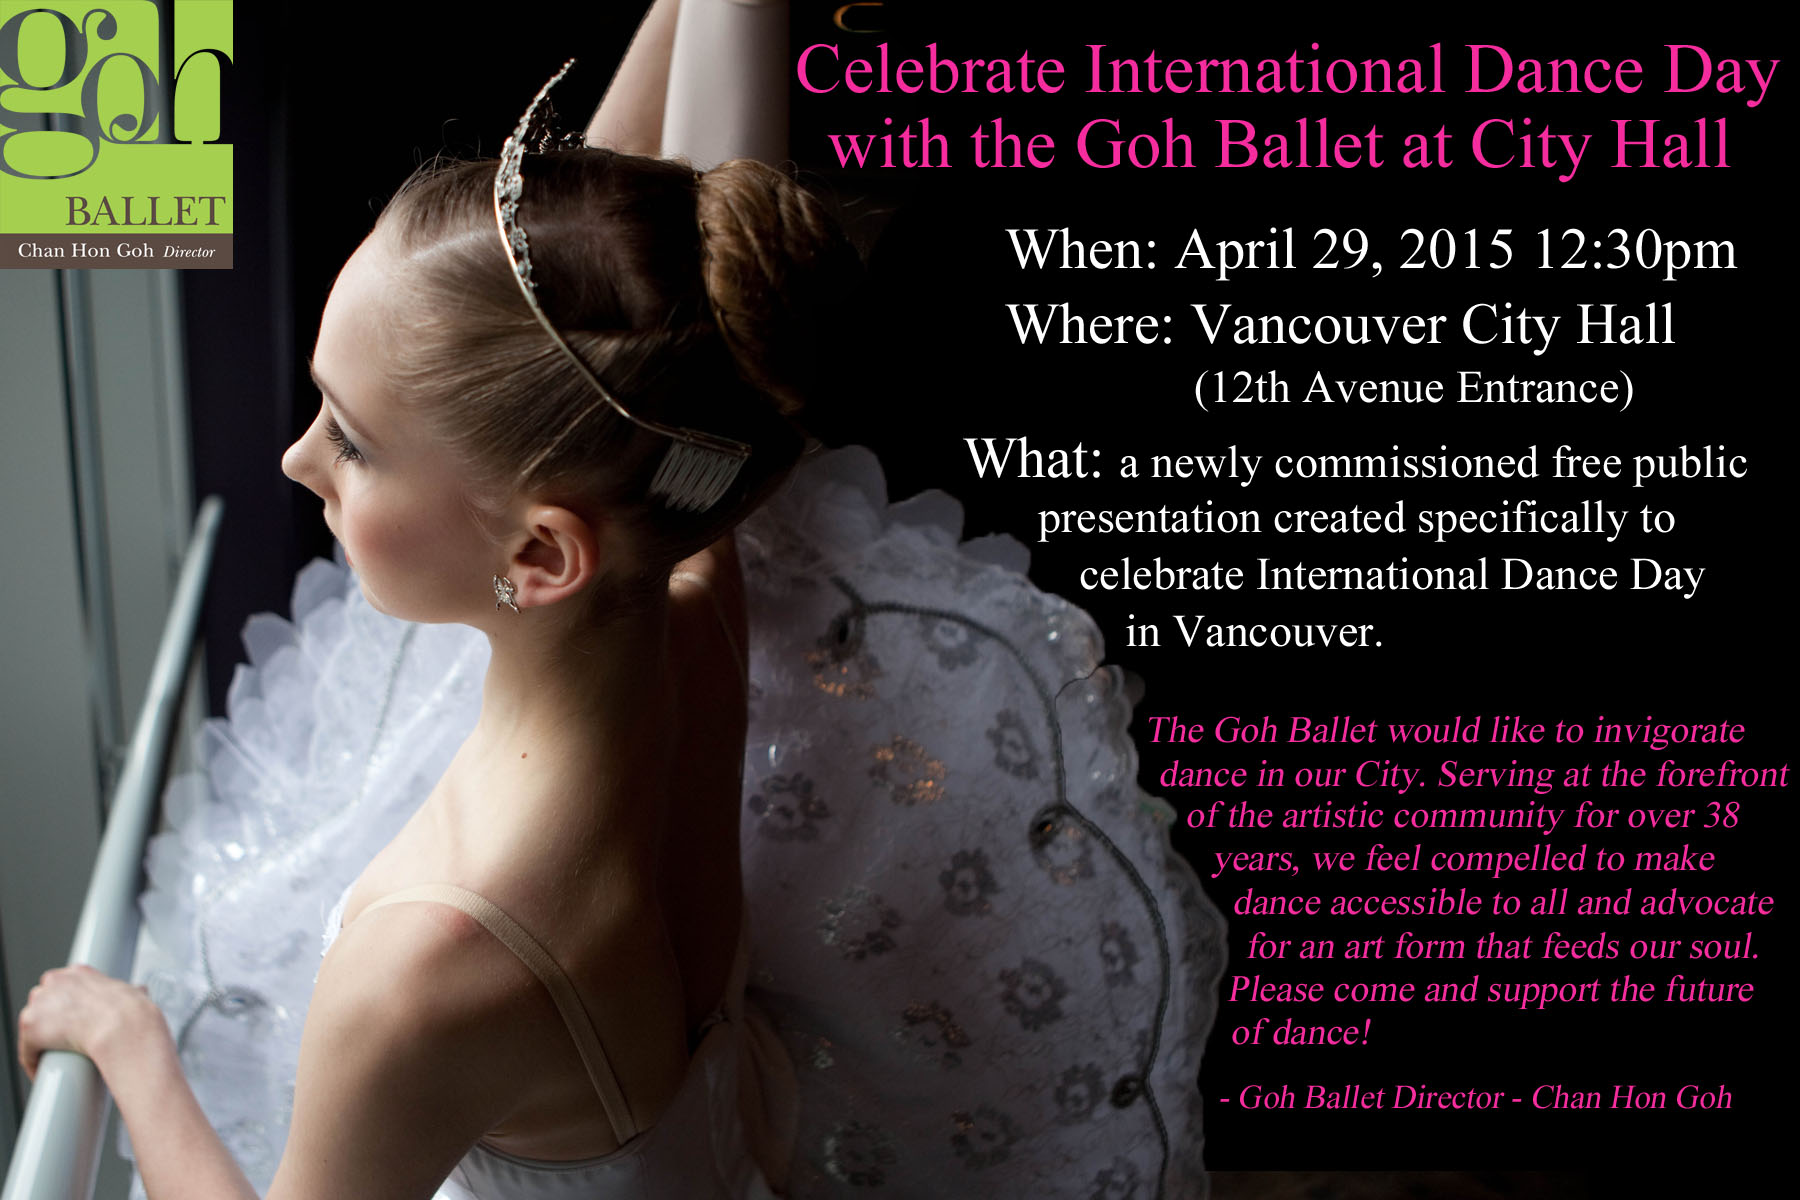 International Dance Day Invitation